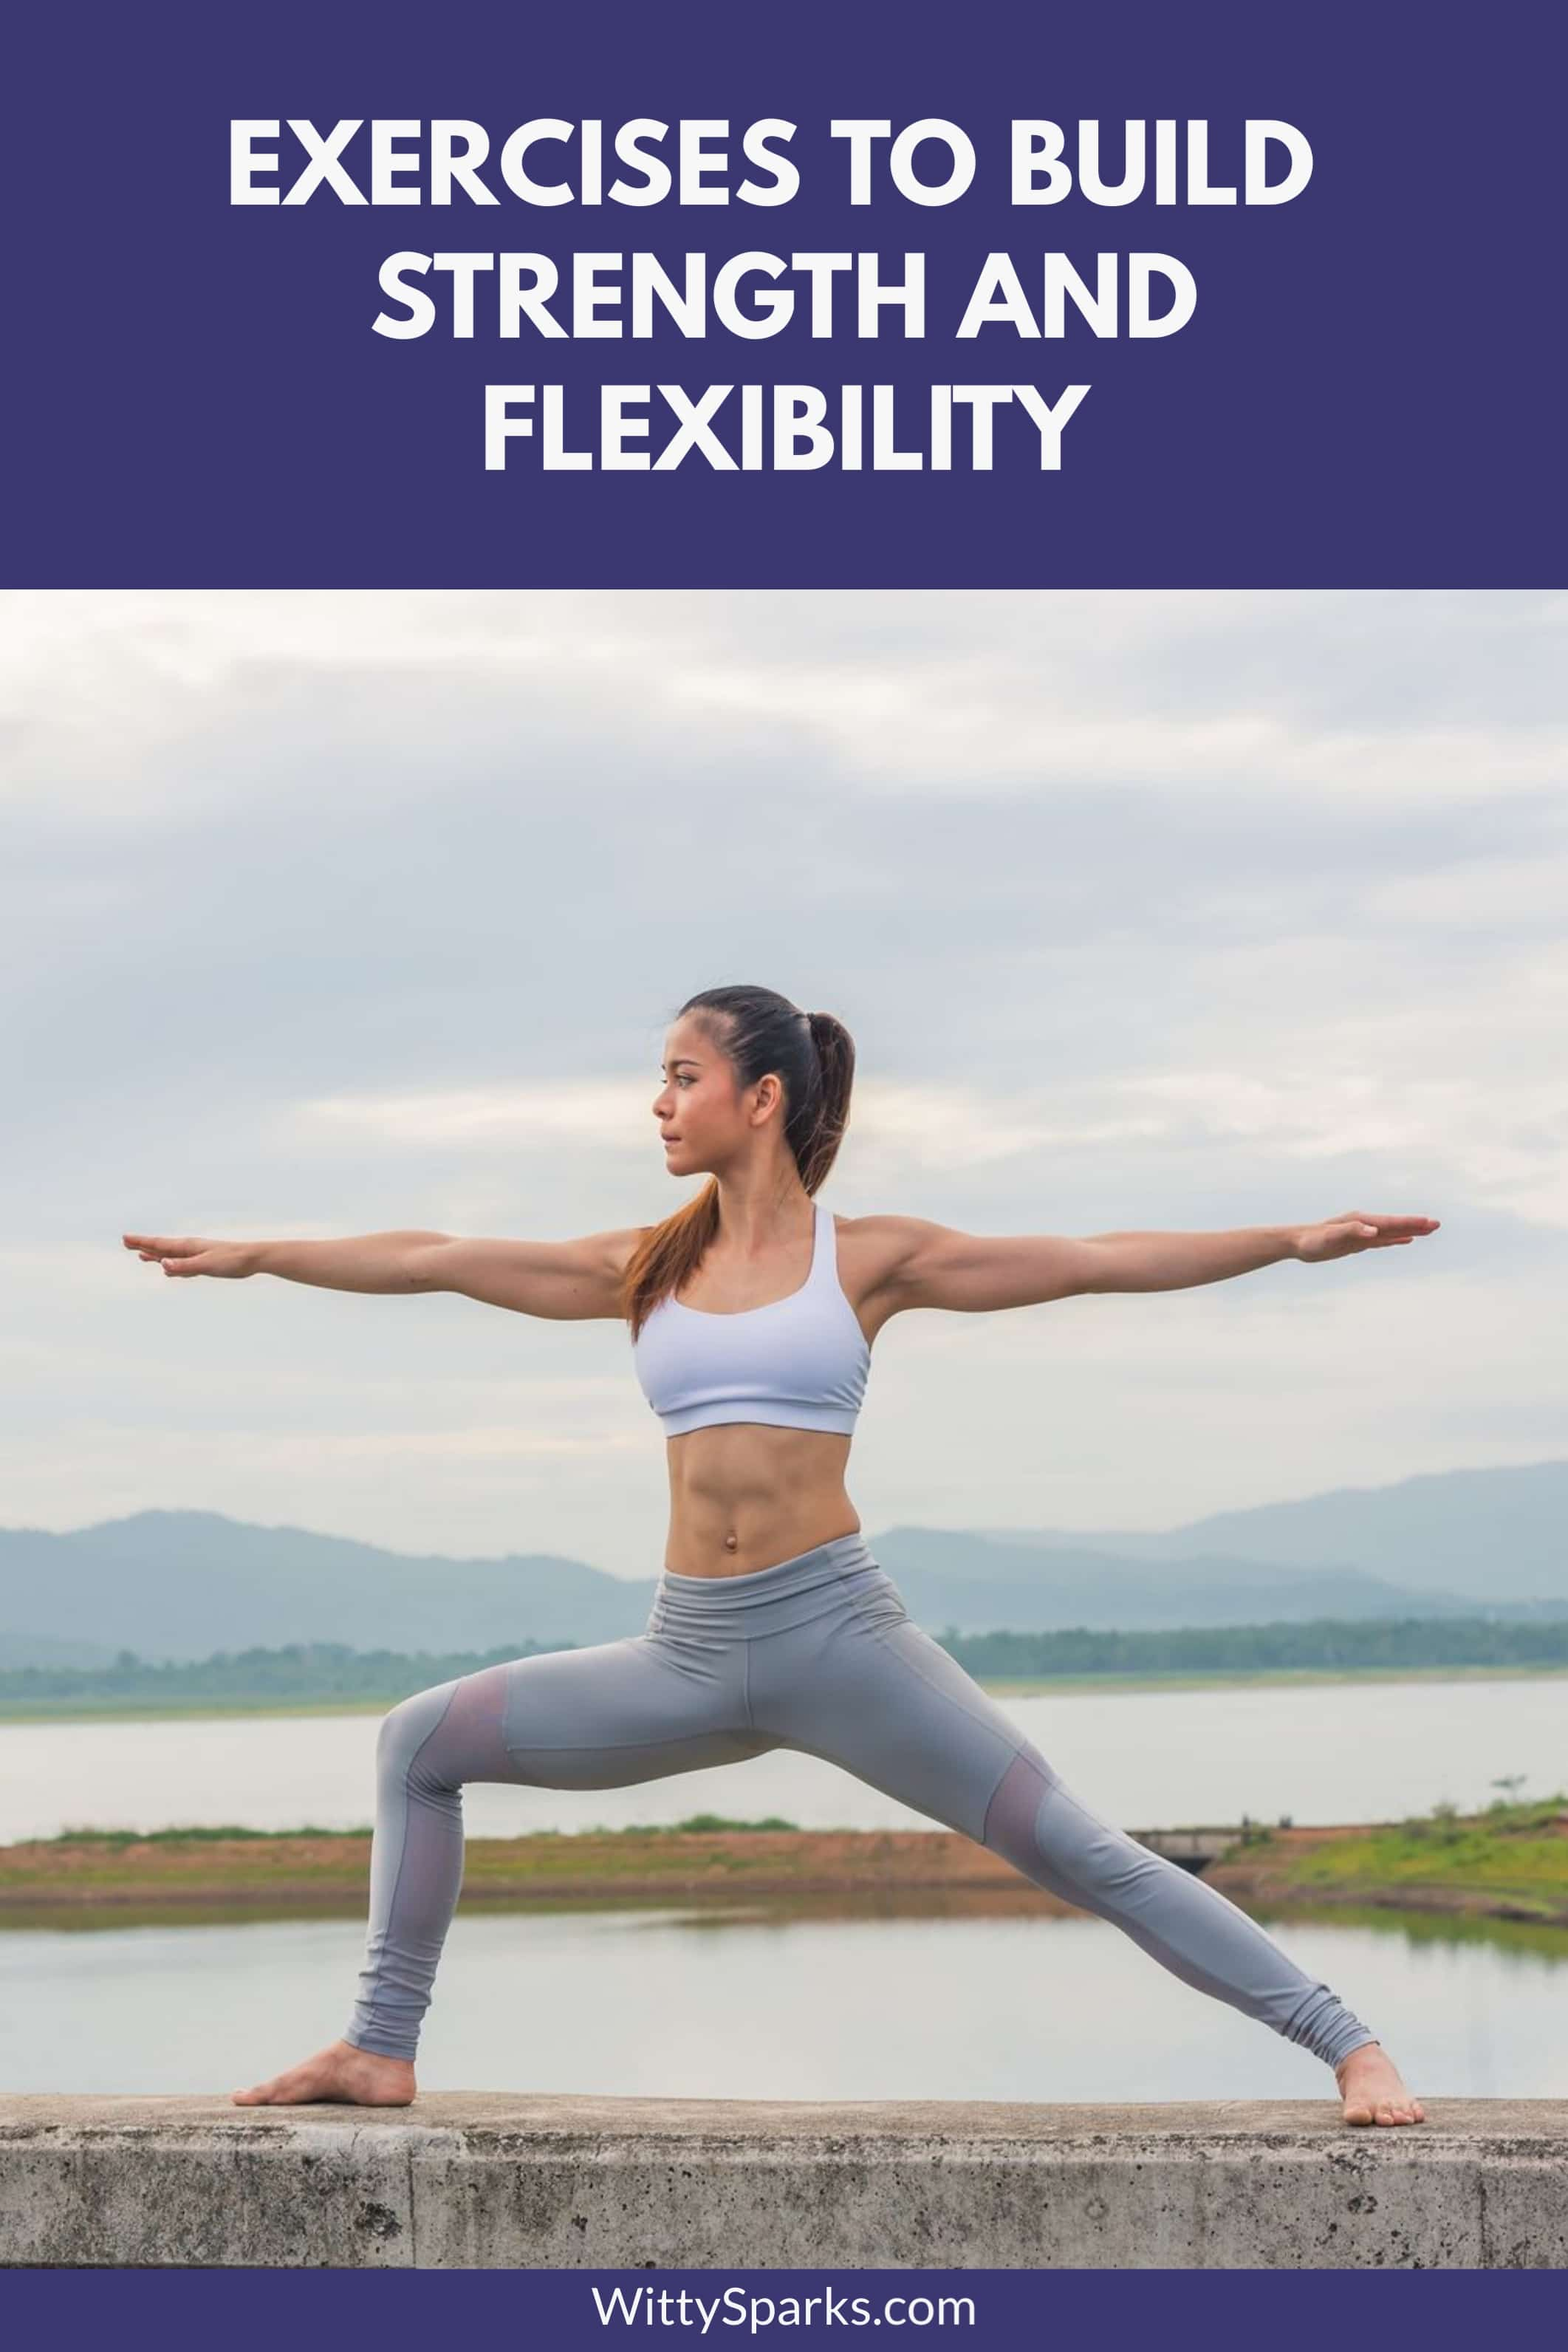 Exercises that can elevate your strength training by improving flexibility